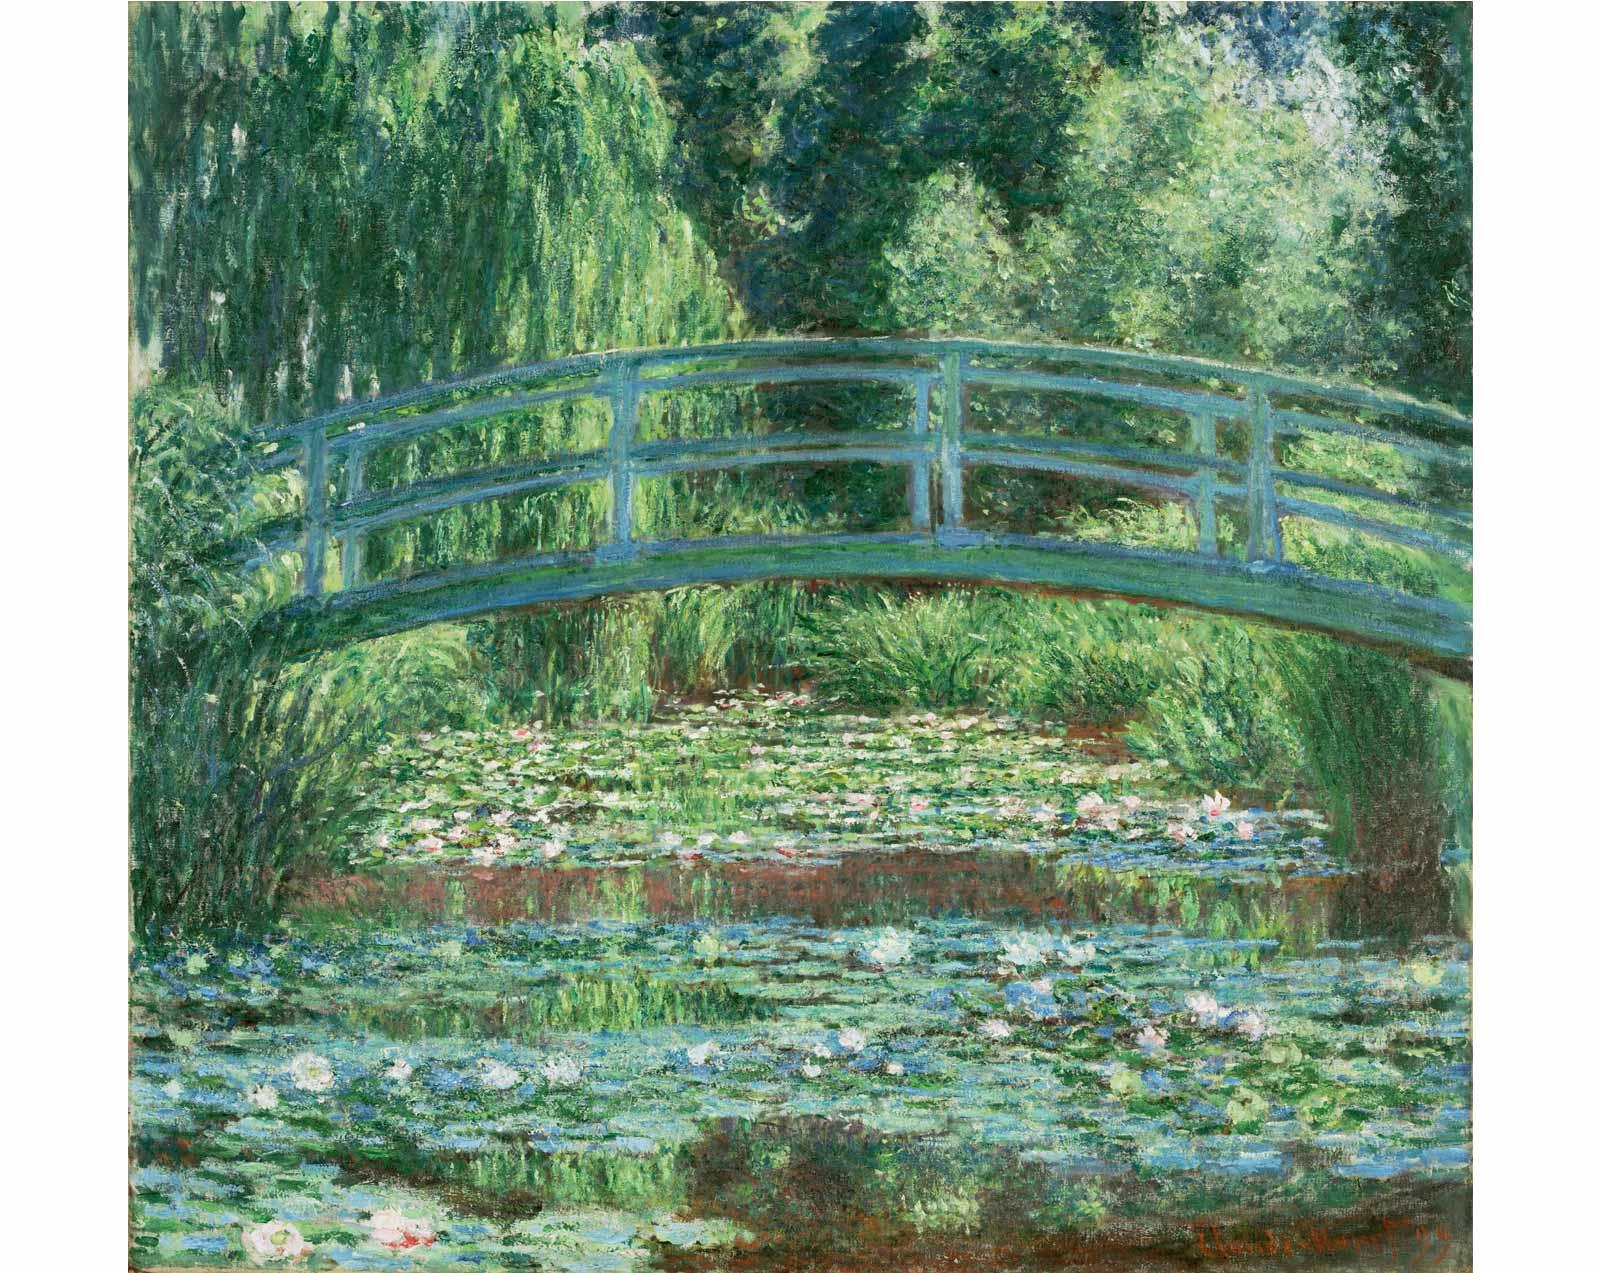 Japanese Footbridge and the Water Lily Pool, Giverny, 1899, by Claude Monet.